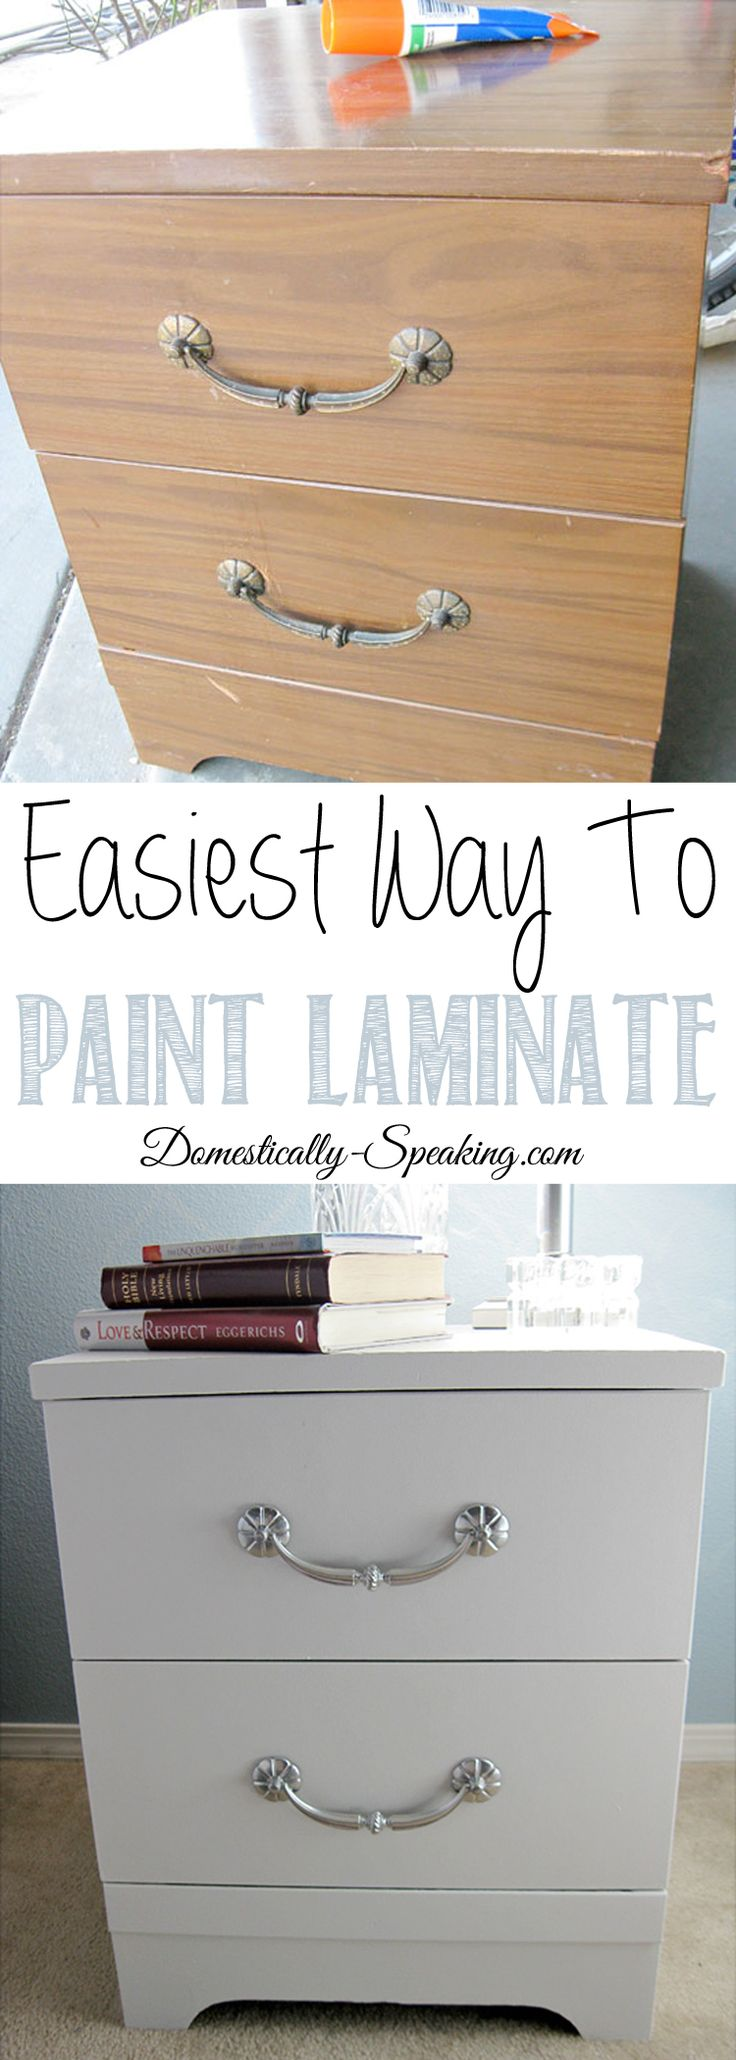 Tutorial on how to paint laminate furniture.  Shares how to paint ugly laminate nightstands easily.